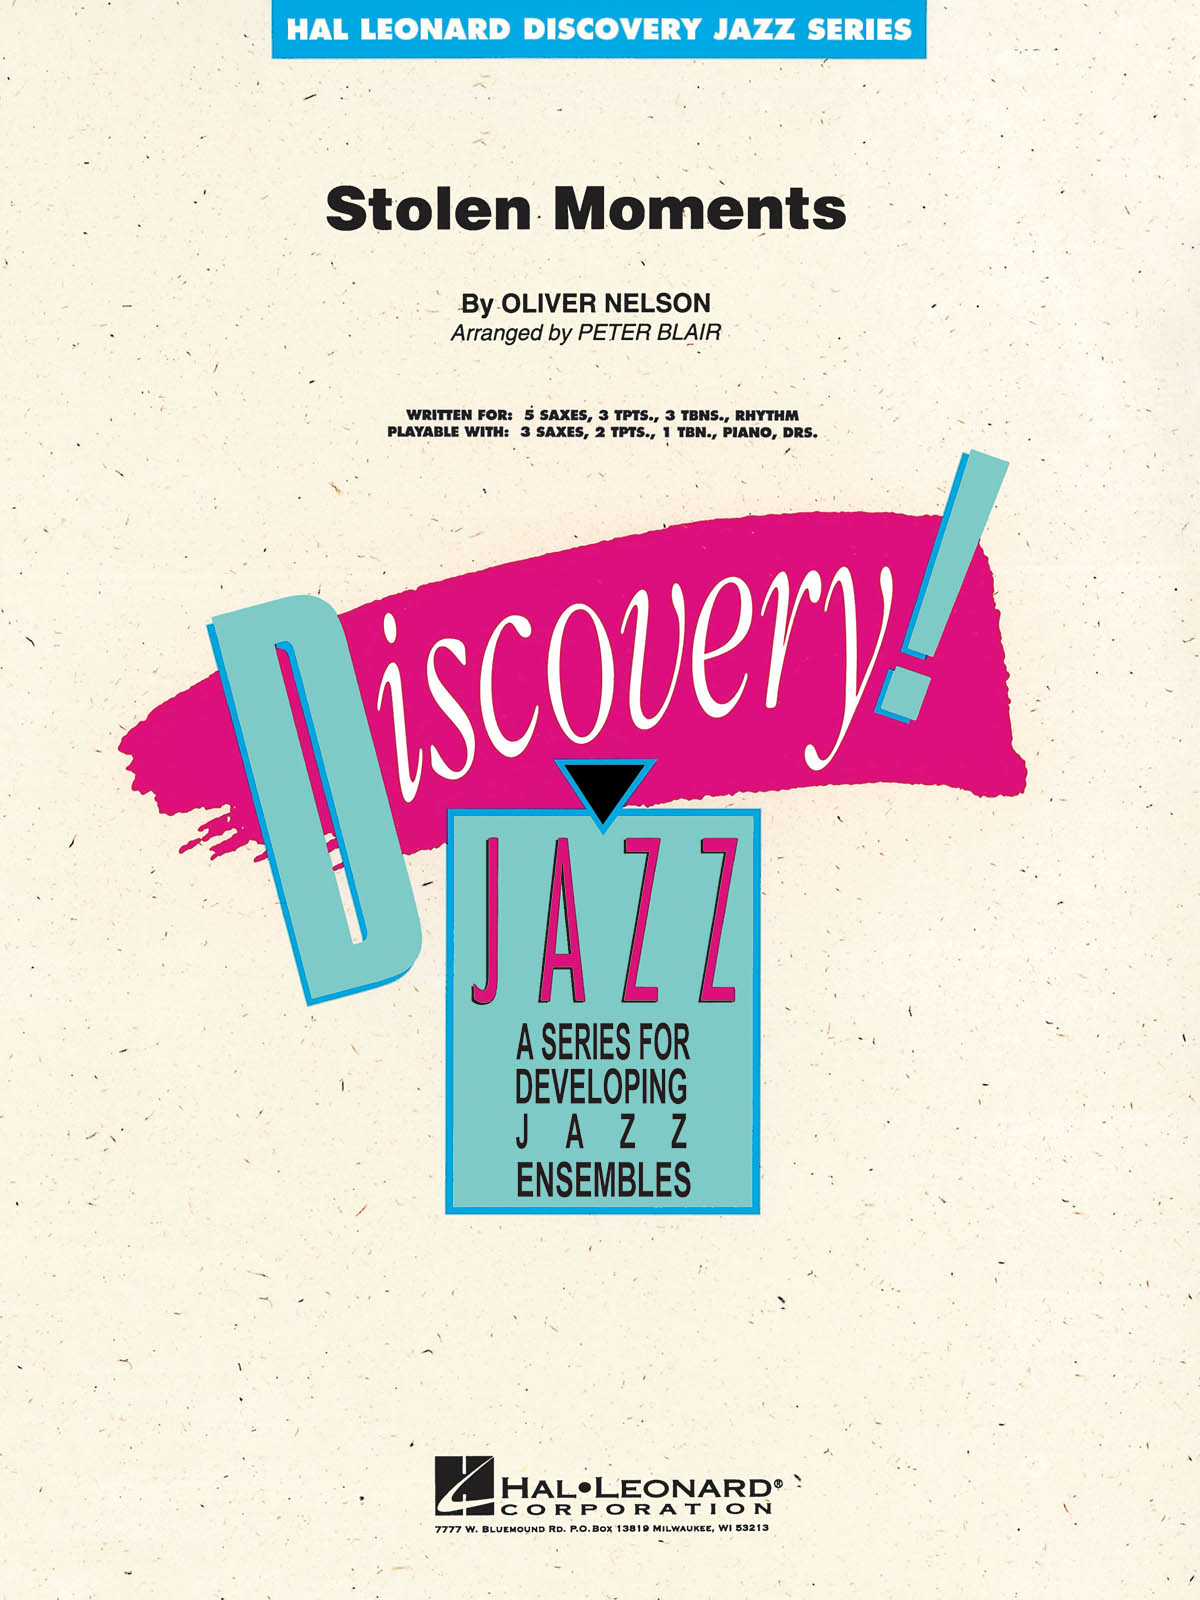 Stolen Moments: Discovery Jazz Big Band Chart